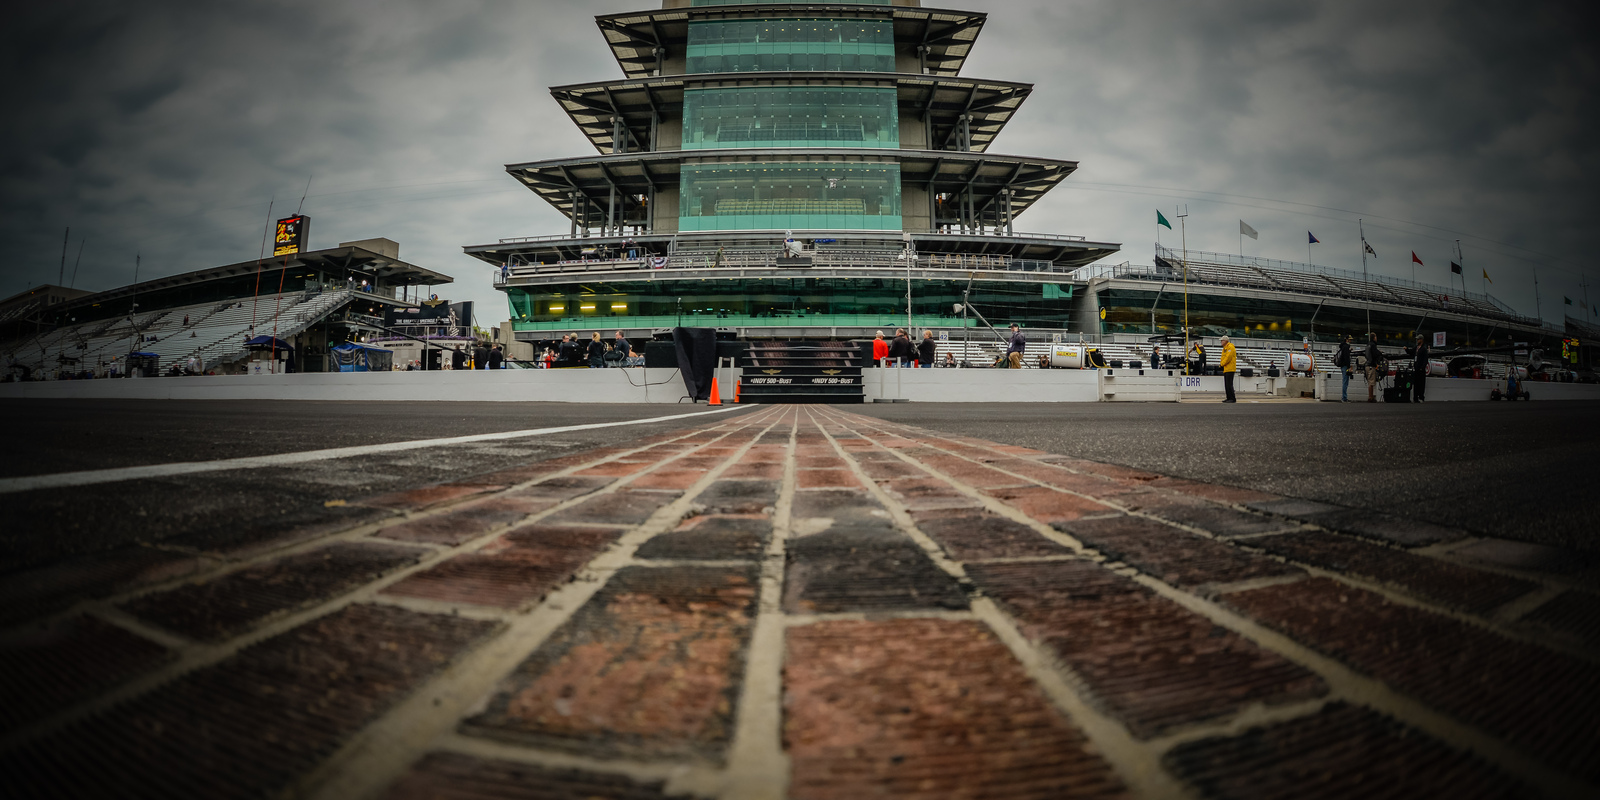 All that remains of the 3.2 million bricks that once paved the entire 2.5 mile track. PHOTO: dailydsports